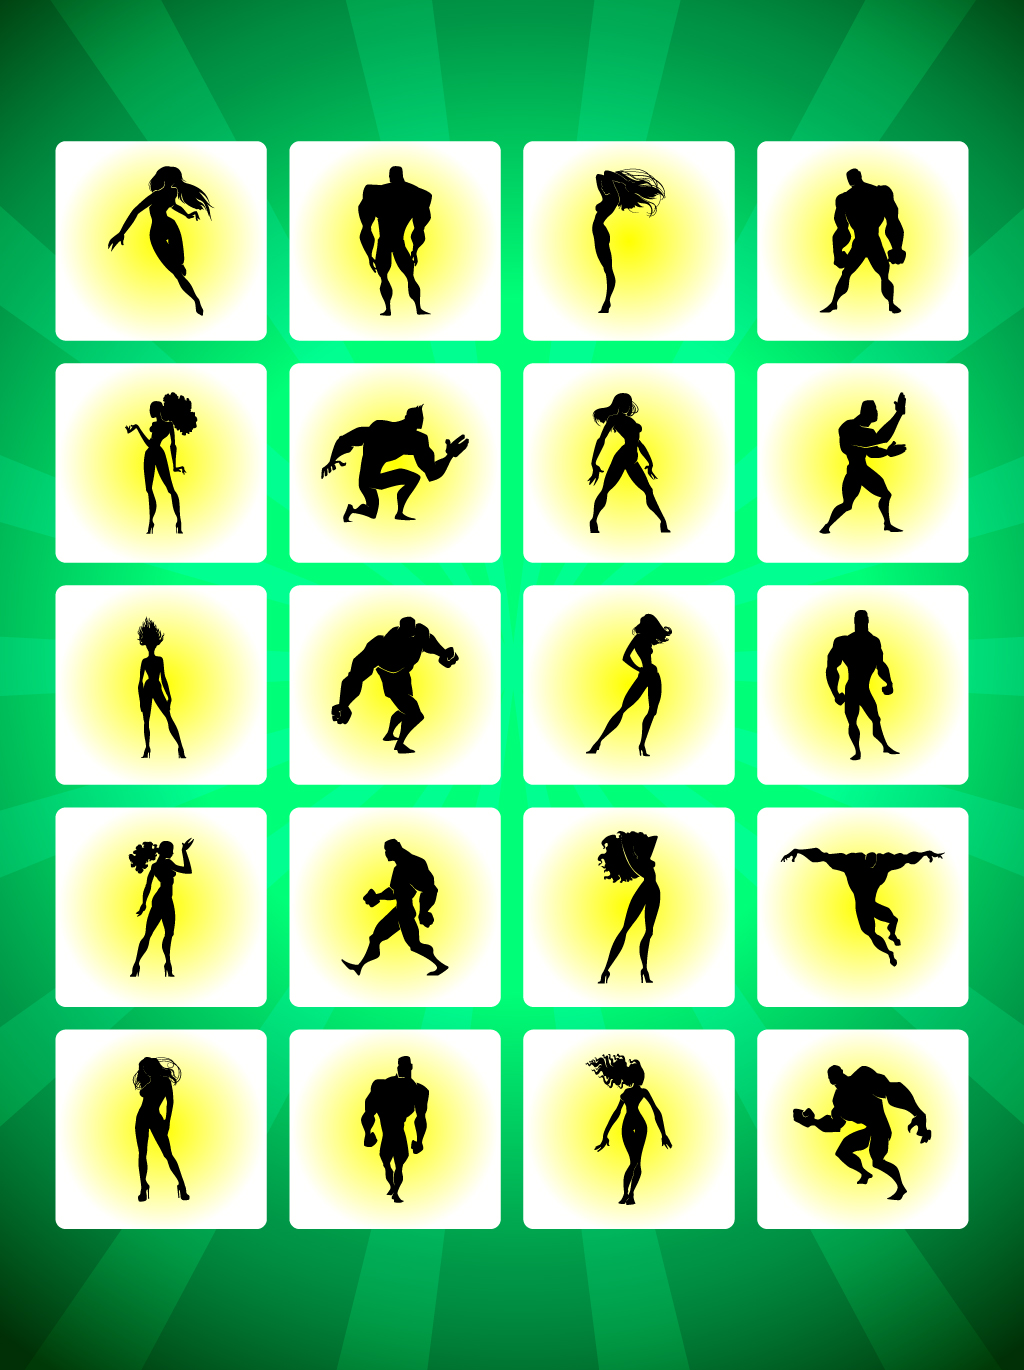 Heroes Silhouettes